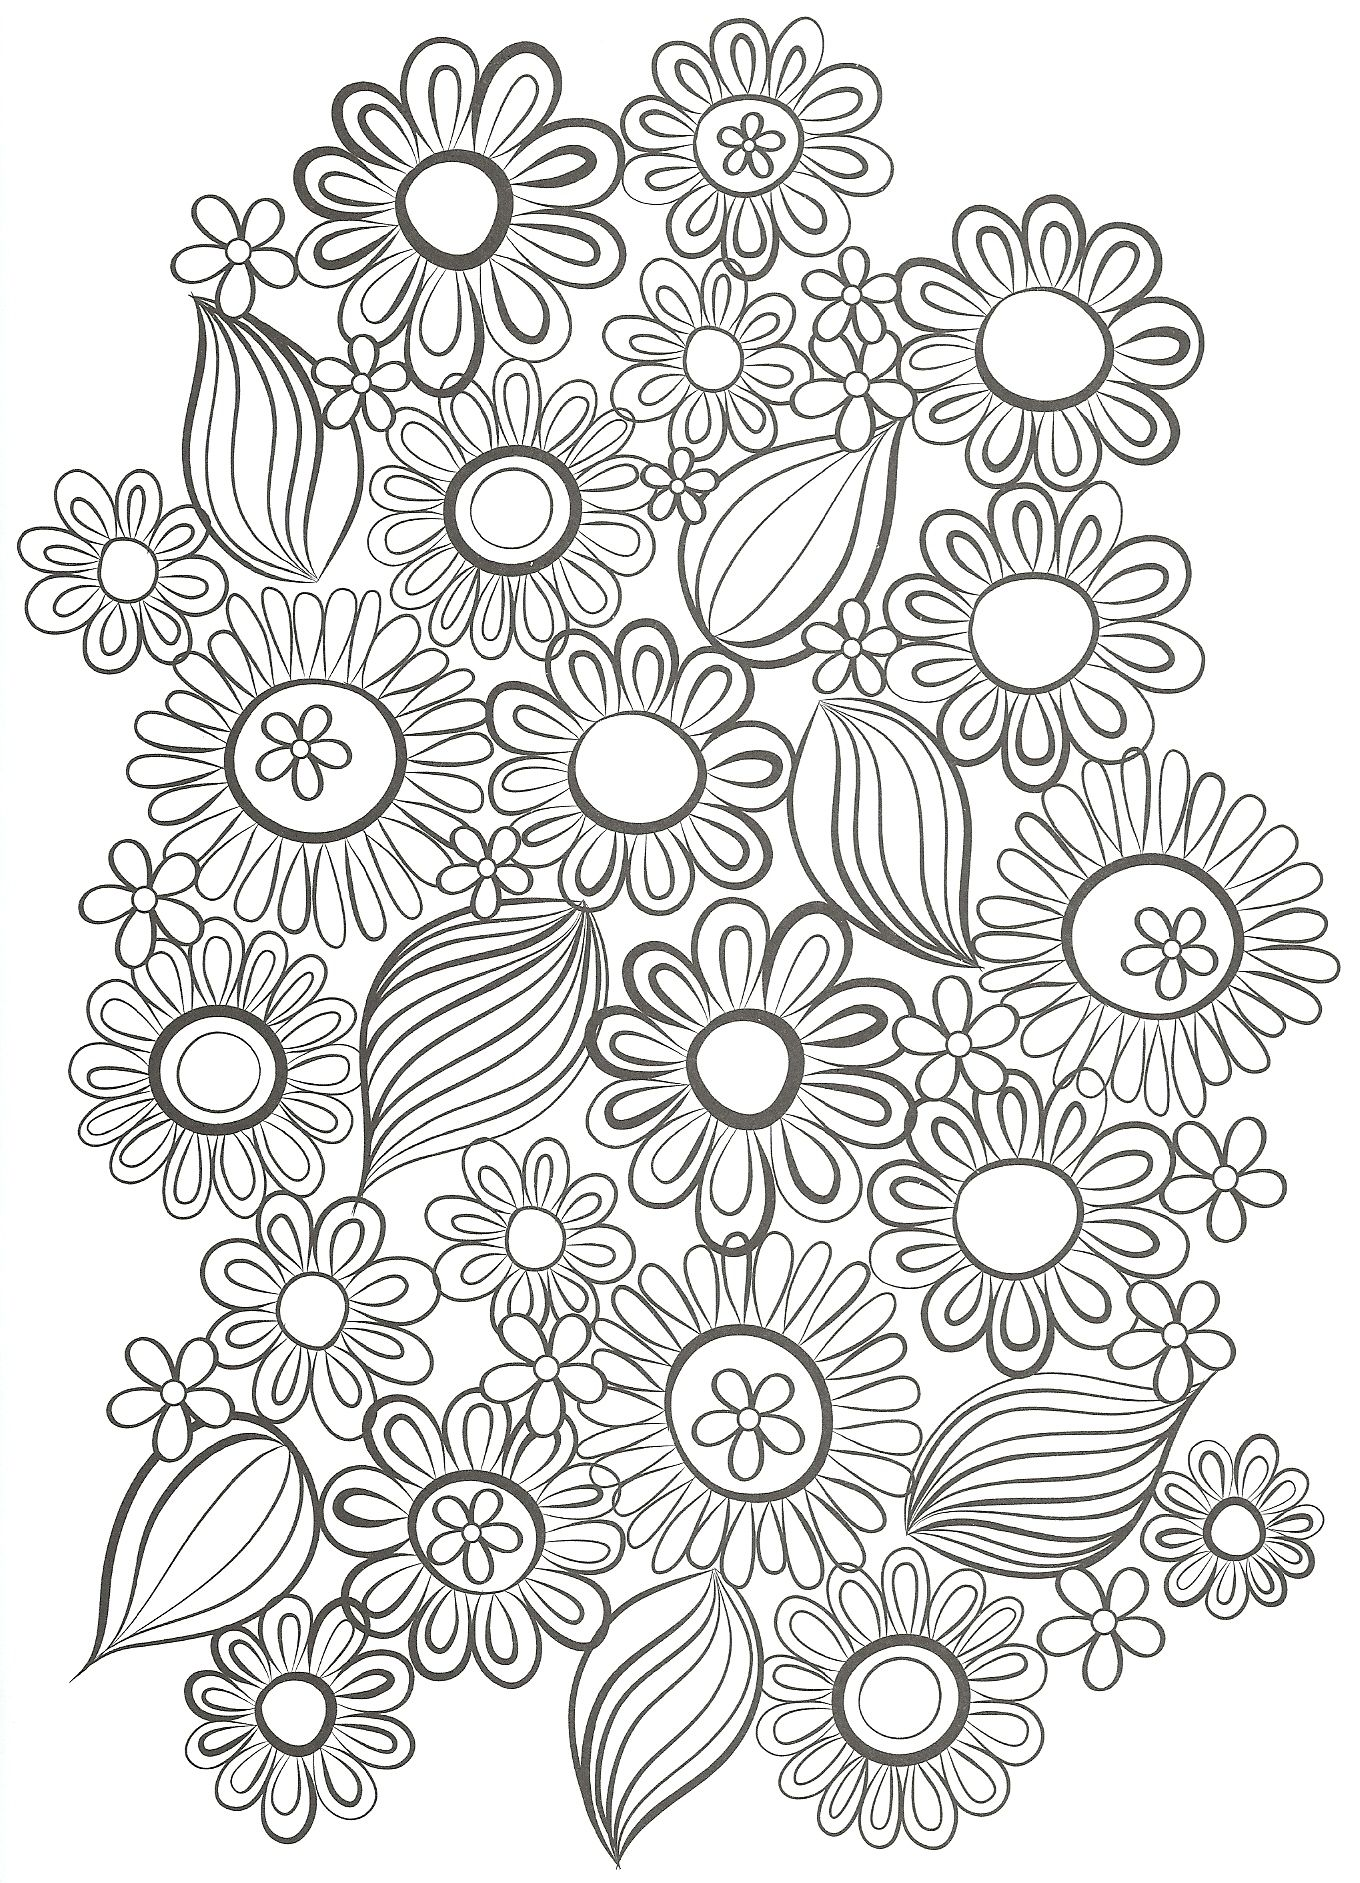 Pin By Ana Cristina Munhoz On Riscos E Para Colorir Pattern Coloring Pages Mandala Design Pattern Quote Coloring Pages